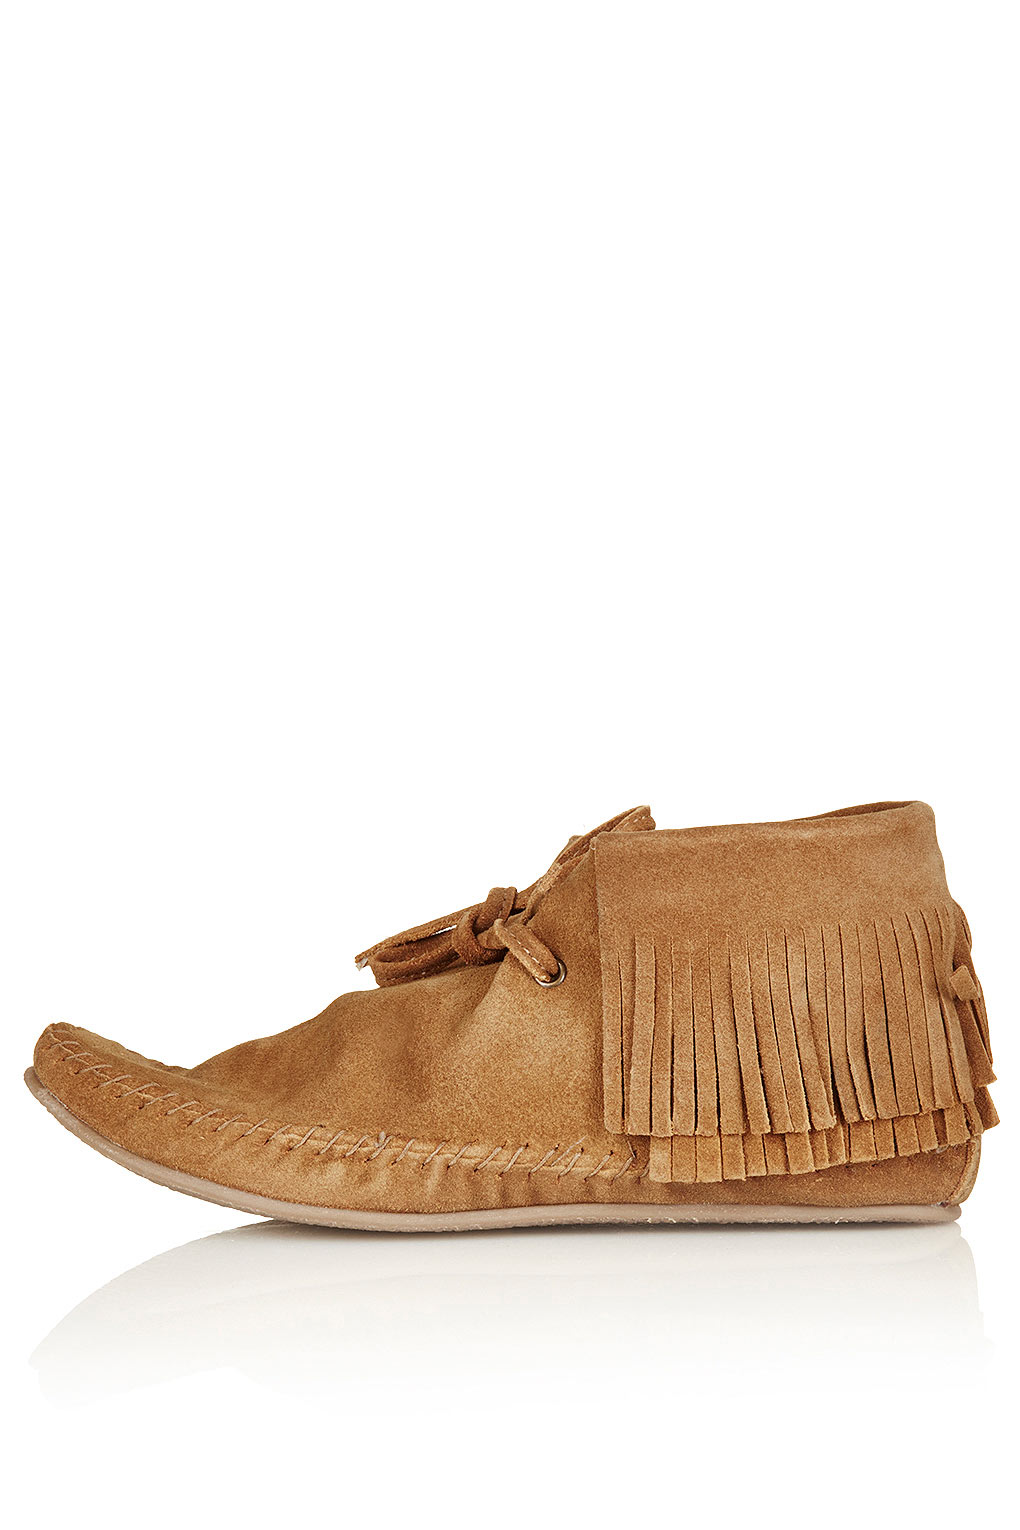 topshop maryland suede fringe boots in brown lyst